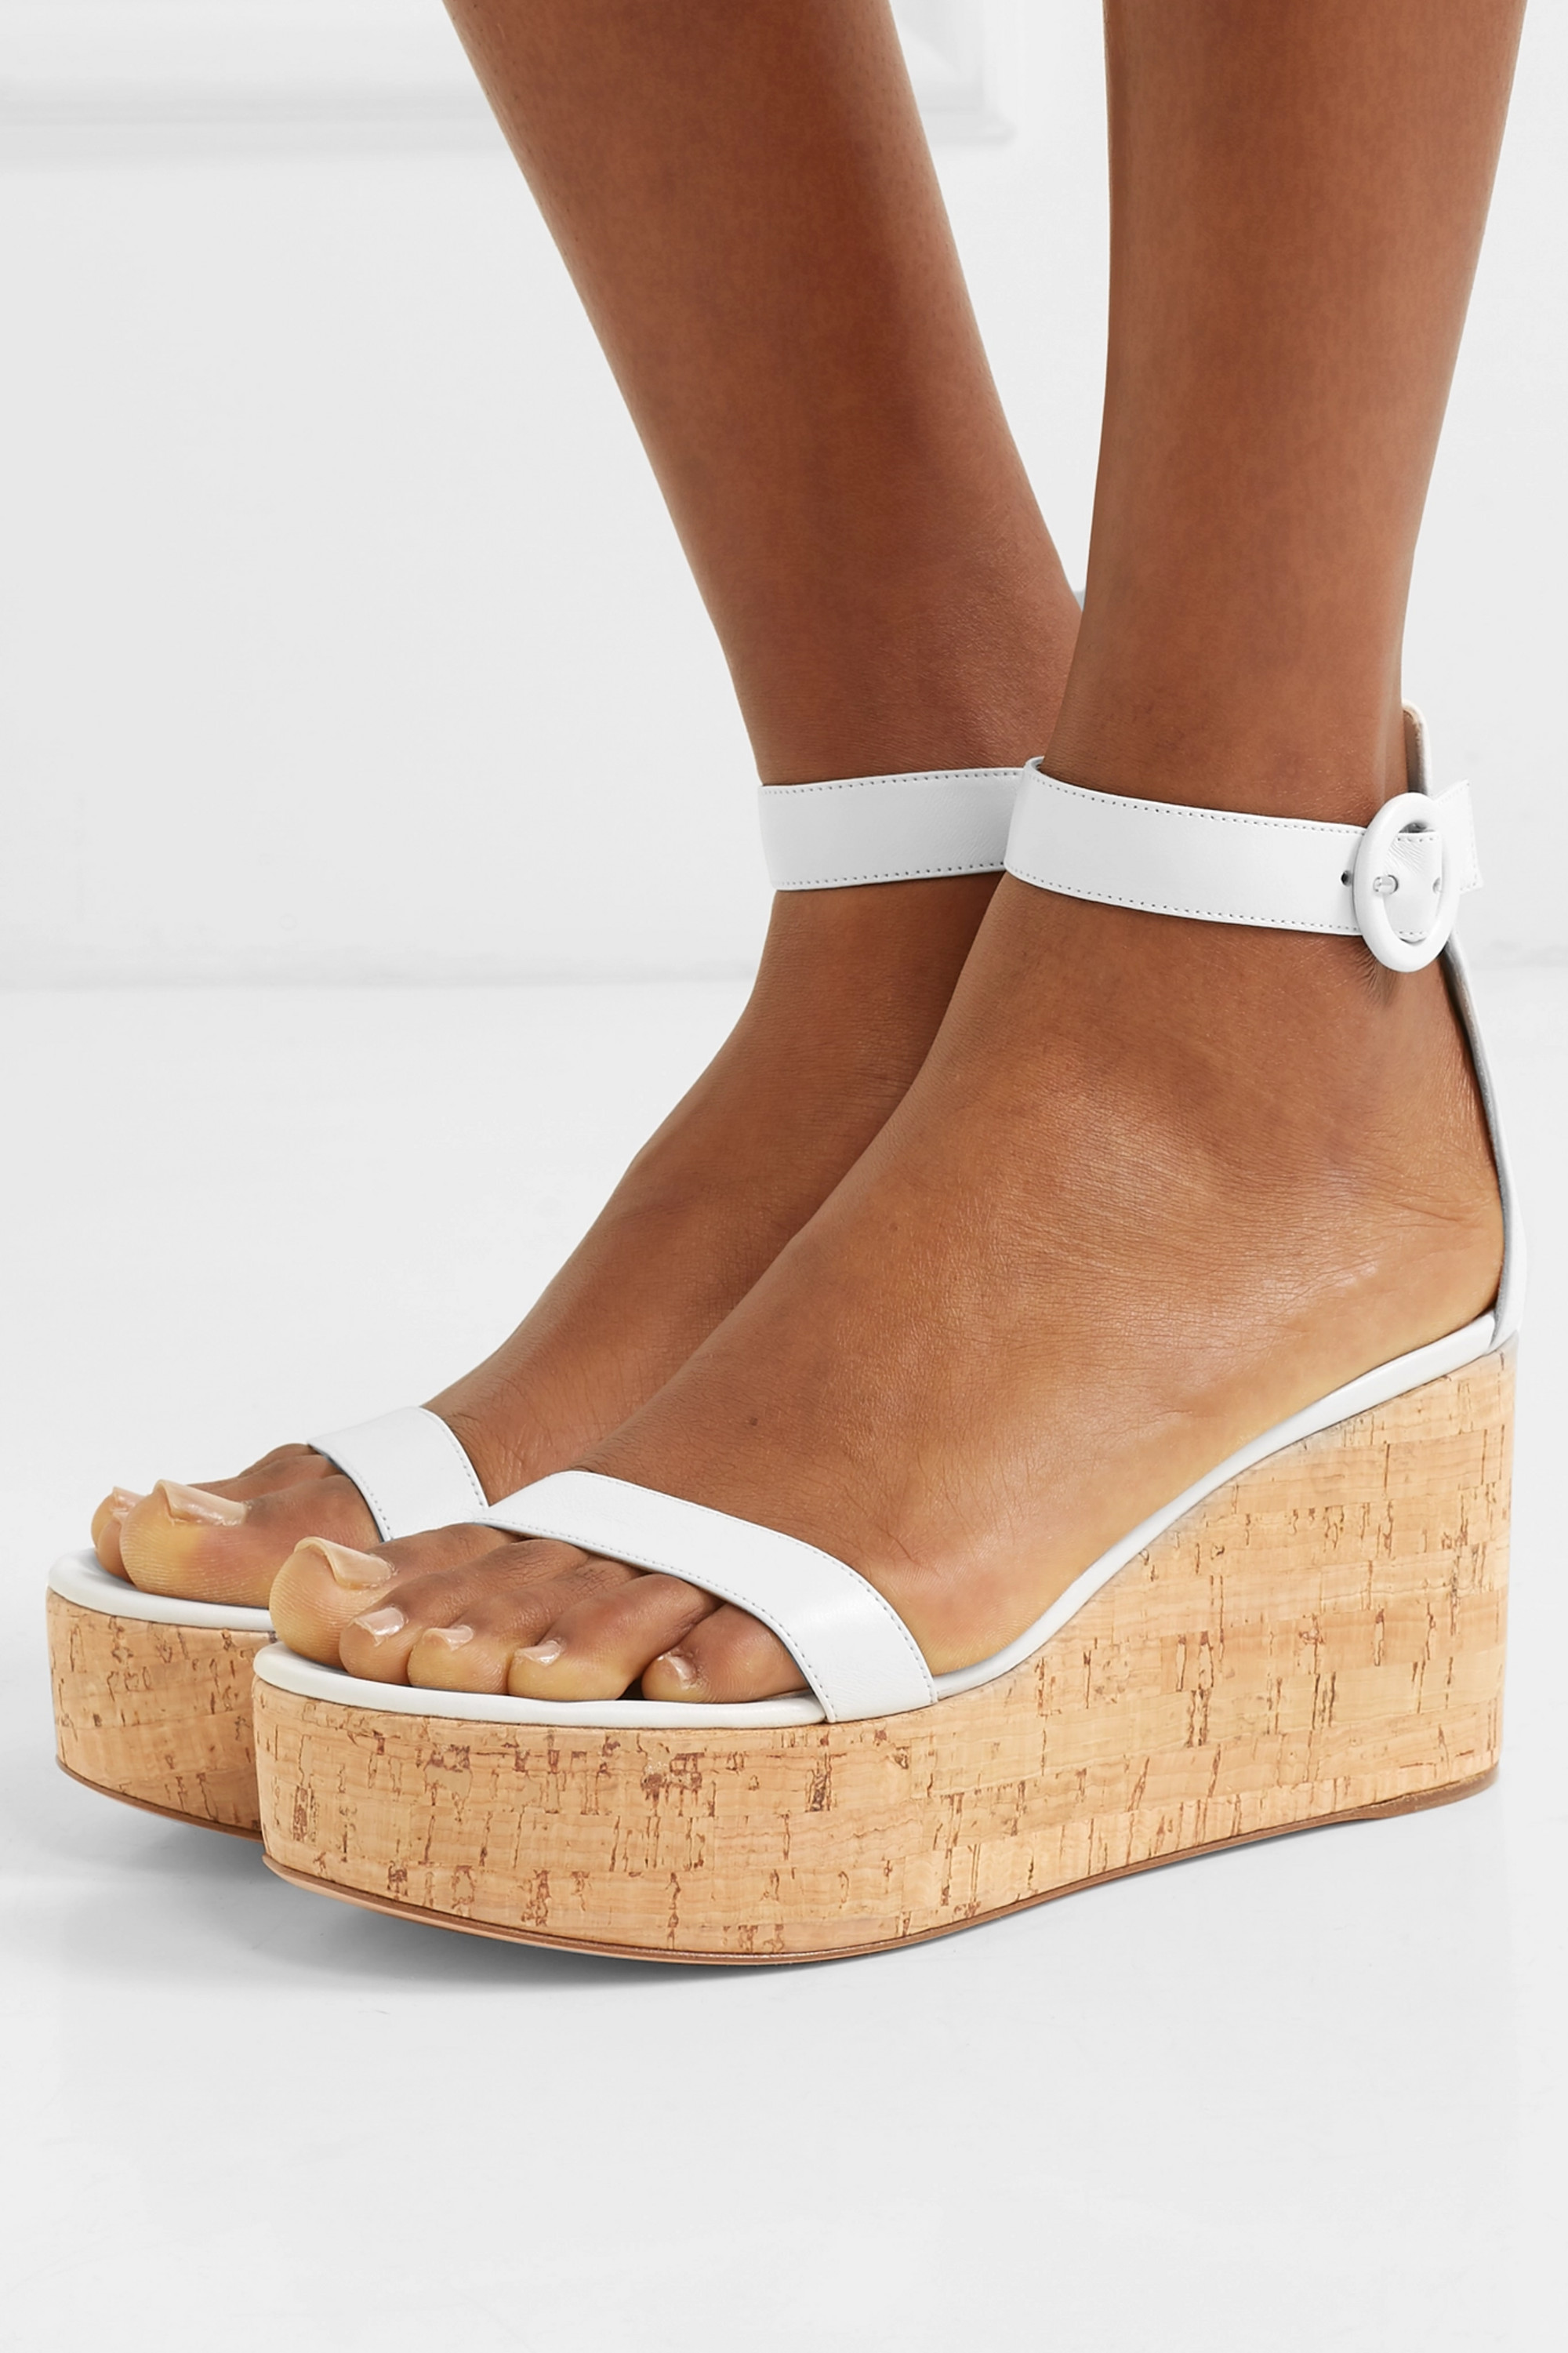 Gianvito Rossi Portofino 45 leather wedge sandals